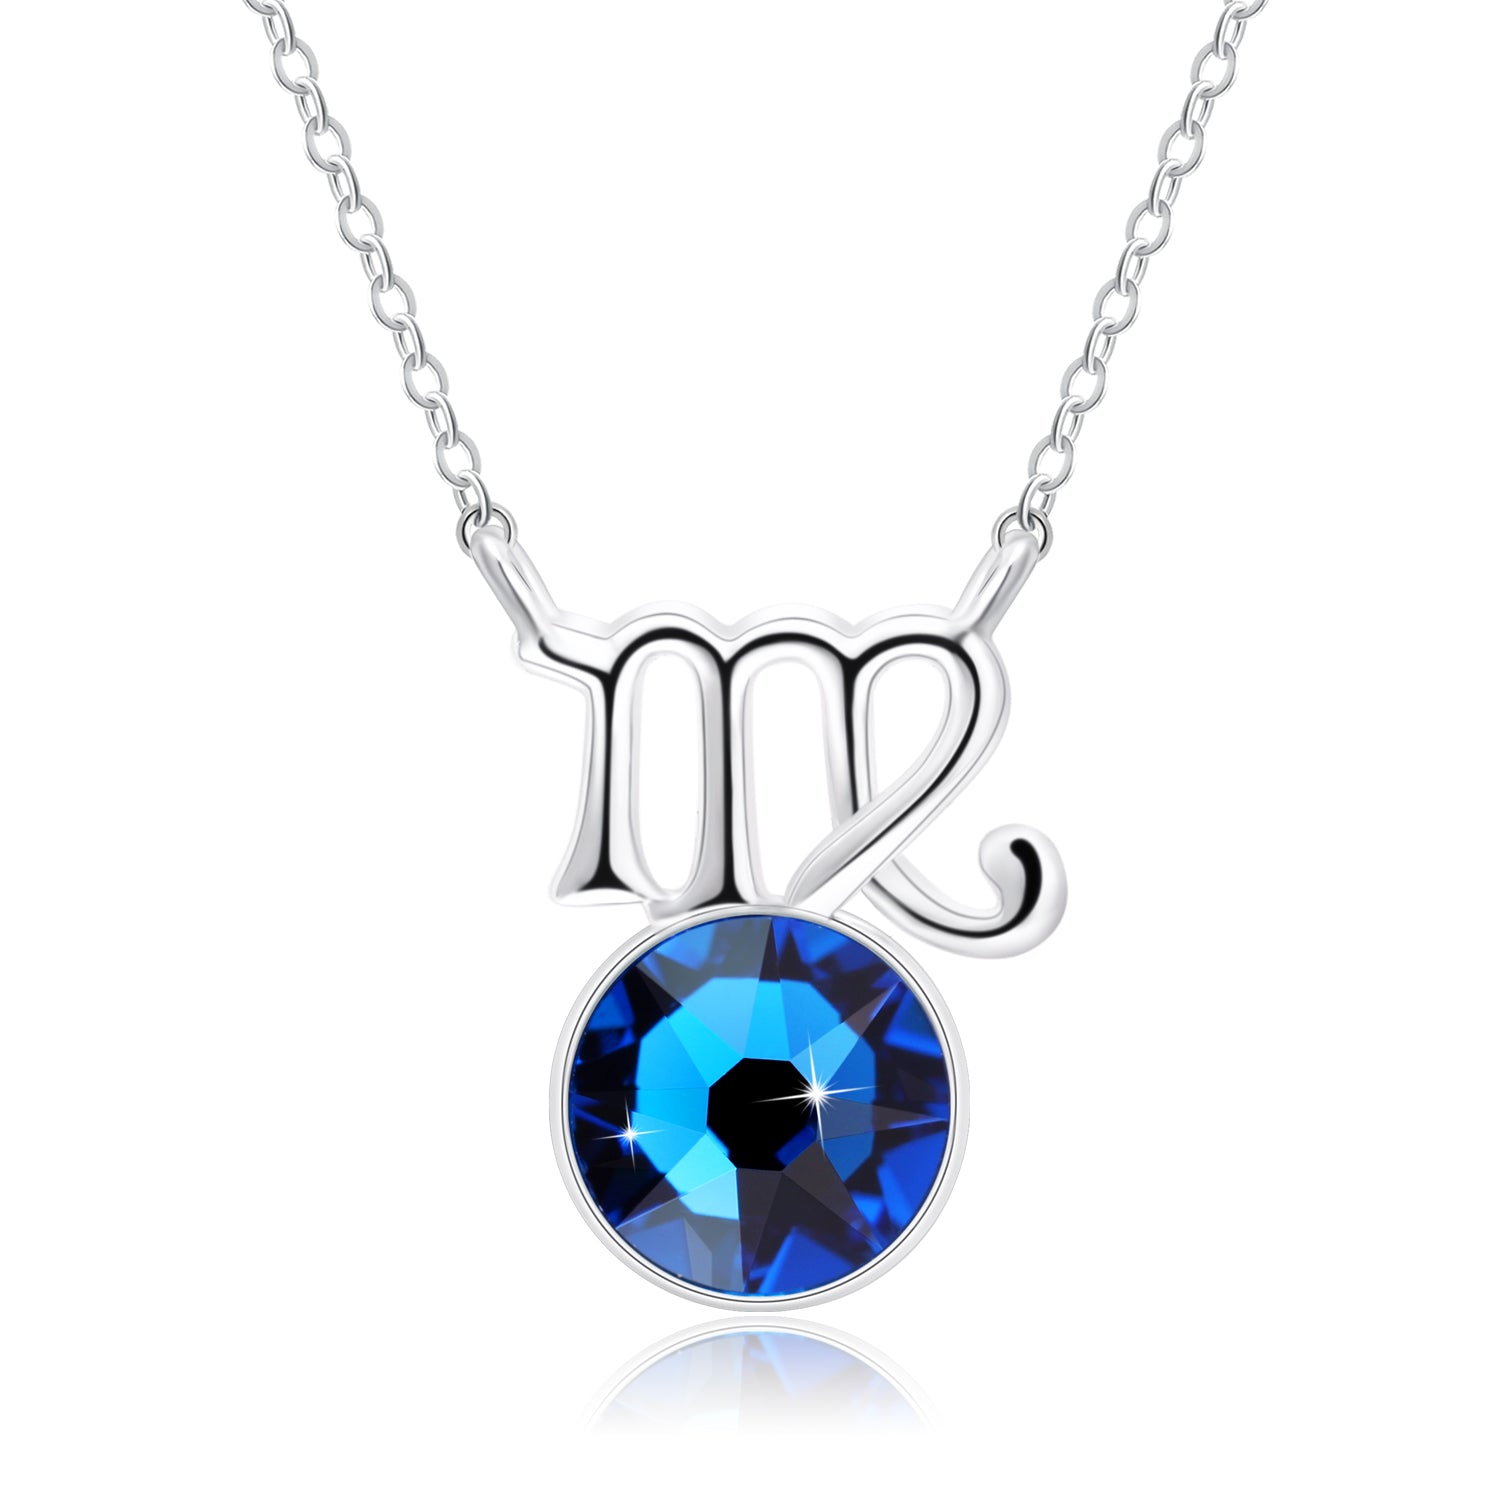 normal virgo celestial necklace shiny lyst jewelry constellation ani wheel and in gold product gallery alex